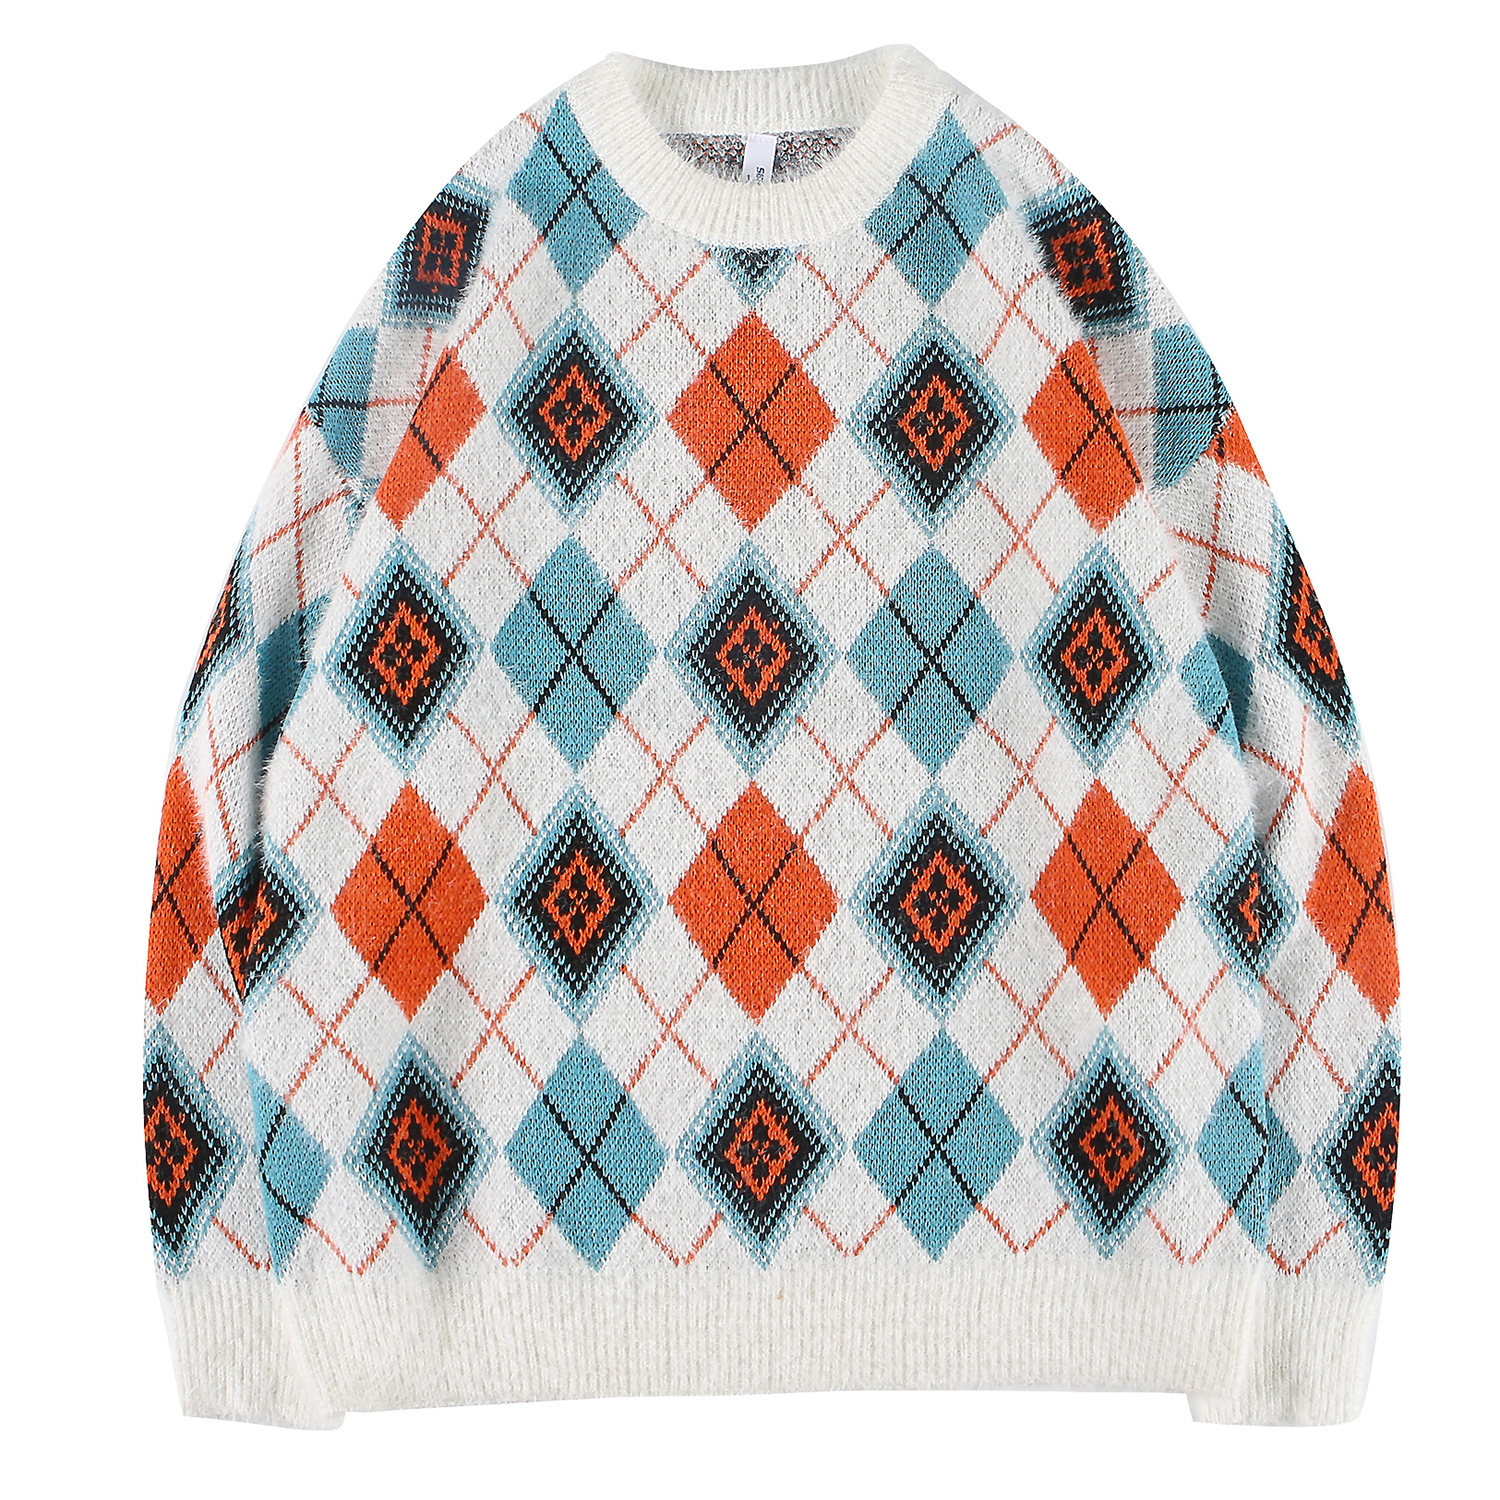 Men's Sweater Fine Knitted Plaid Jumpers Cashmere Stitching Colors Long Sleeve Tops Warmth For Young Boys Outdoor Autumn Winter